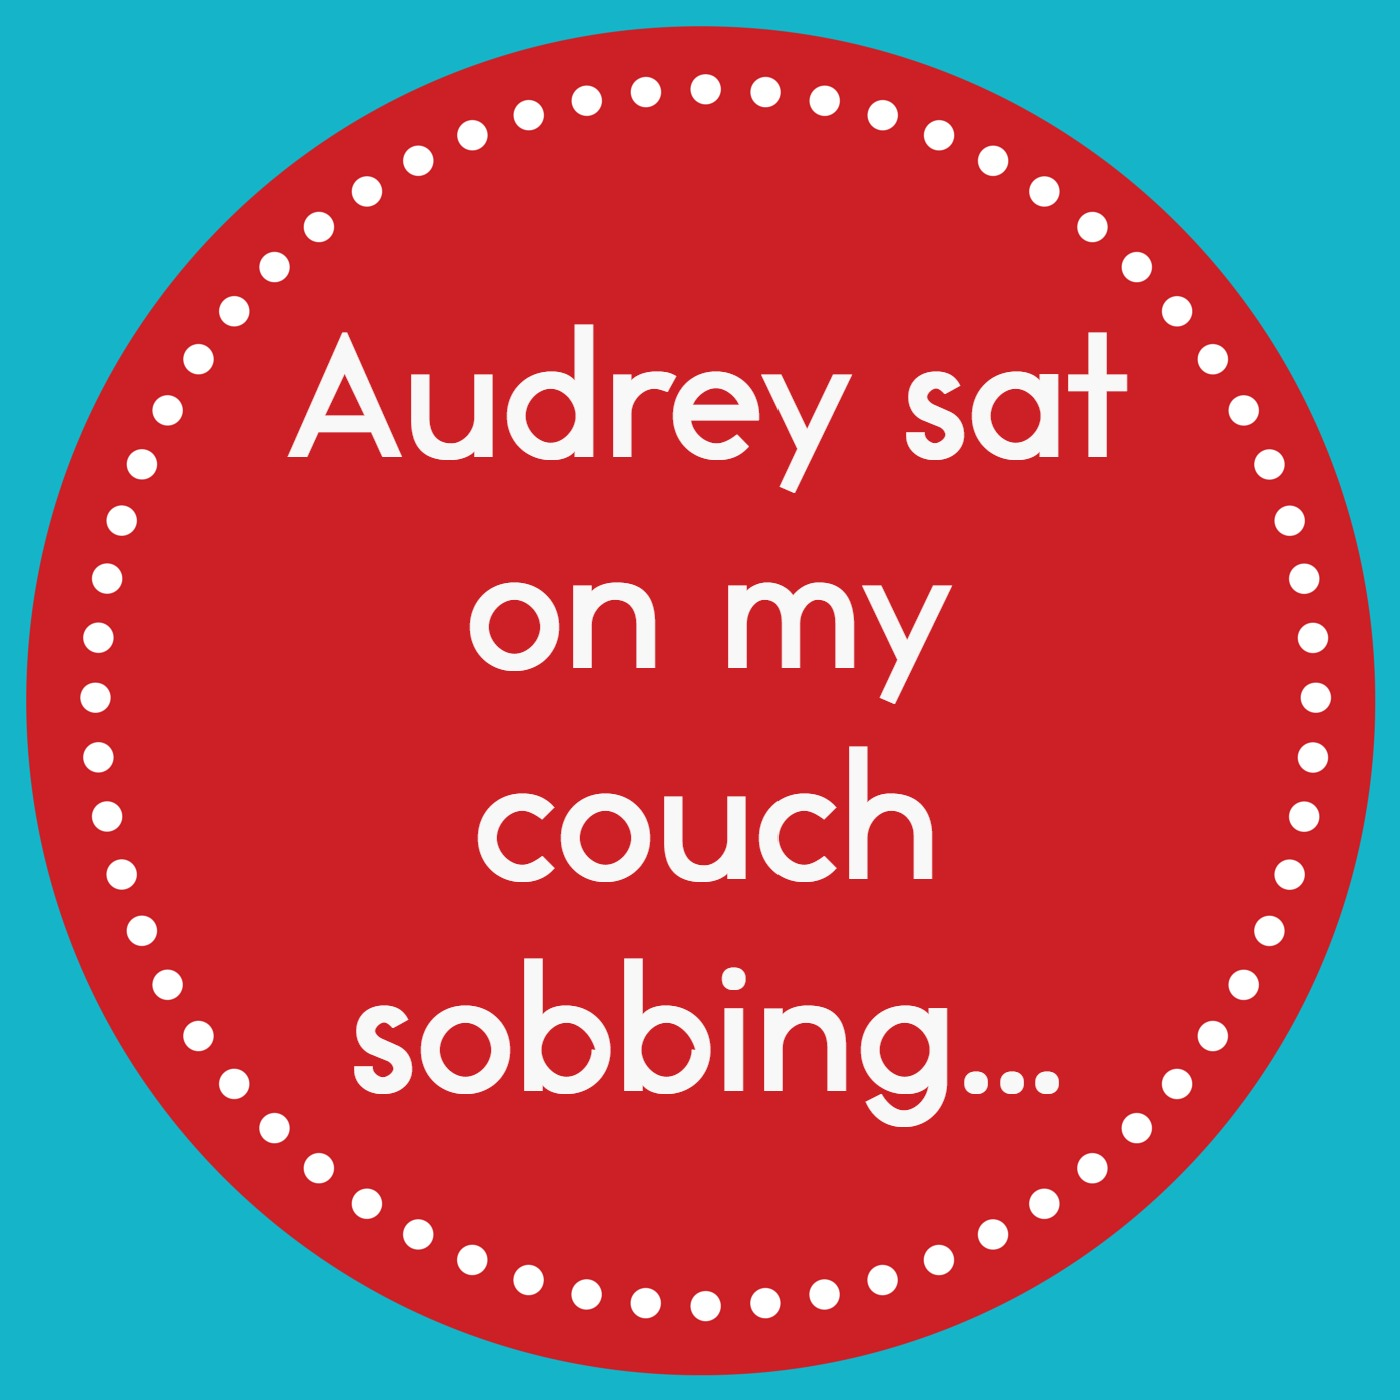 Episode 1: Audrey was sobbing on my couch